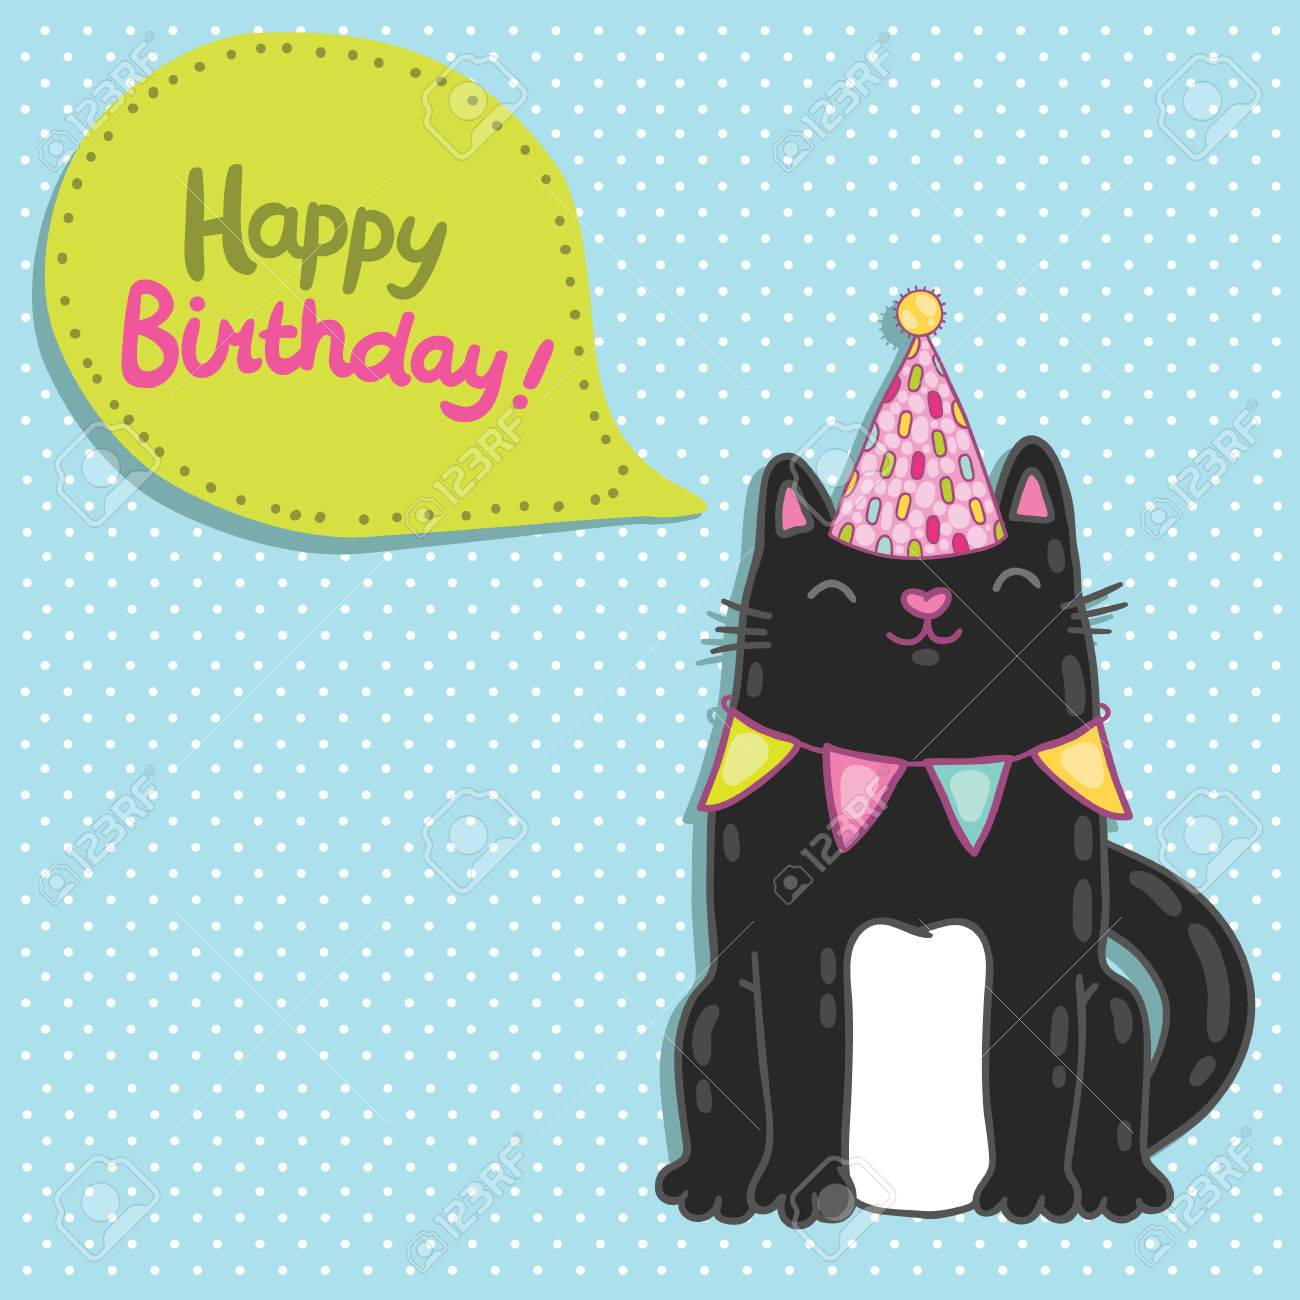 Happy Birthday Card Background With A Cat Vector Holiday Party